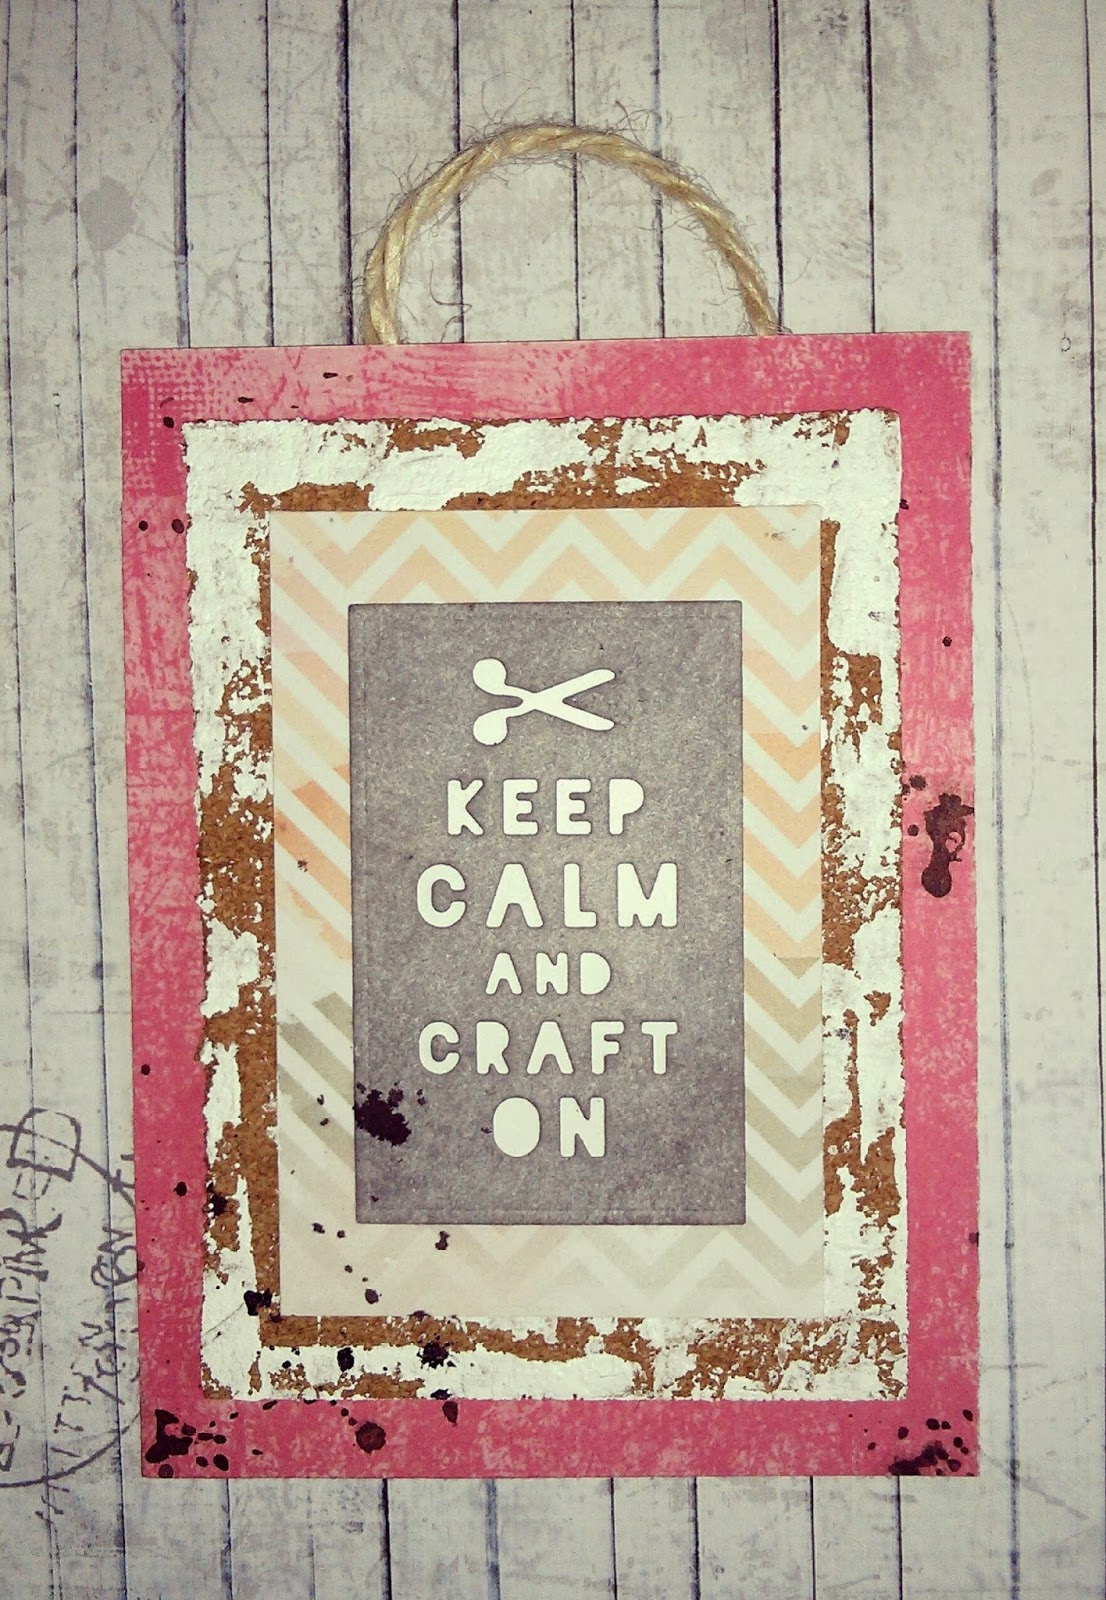 Cuadro scrapbooking: Keep calm an craft on